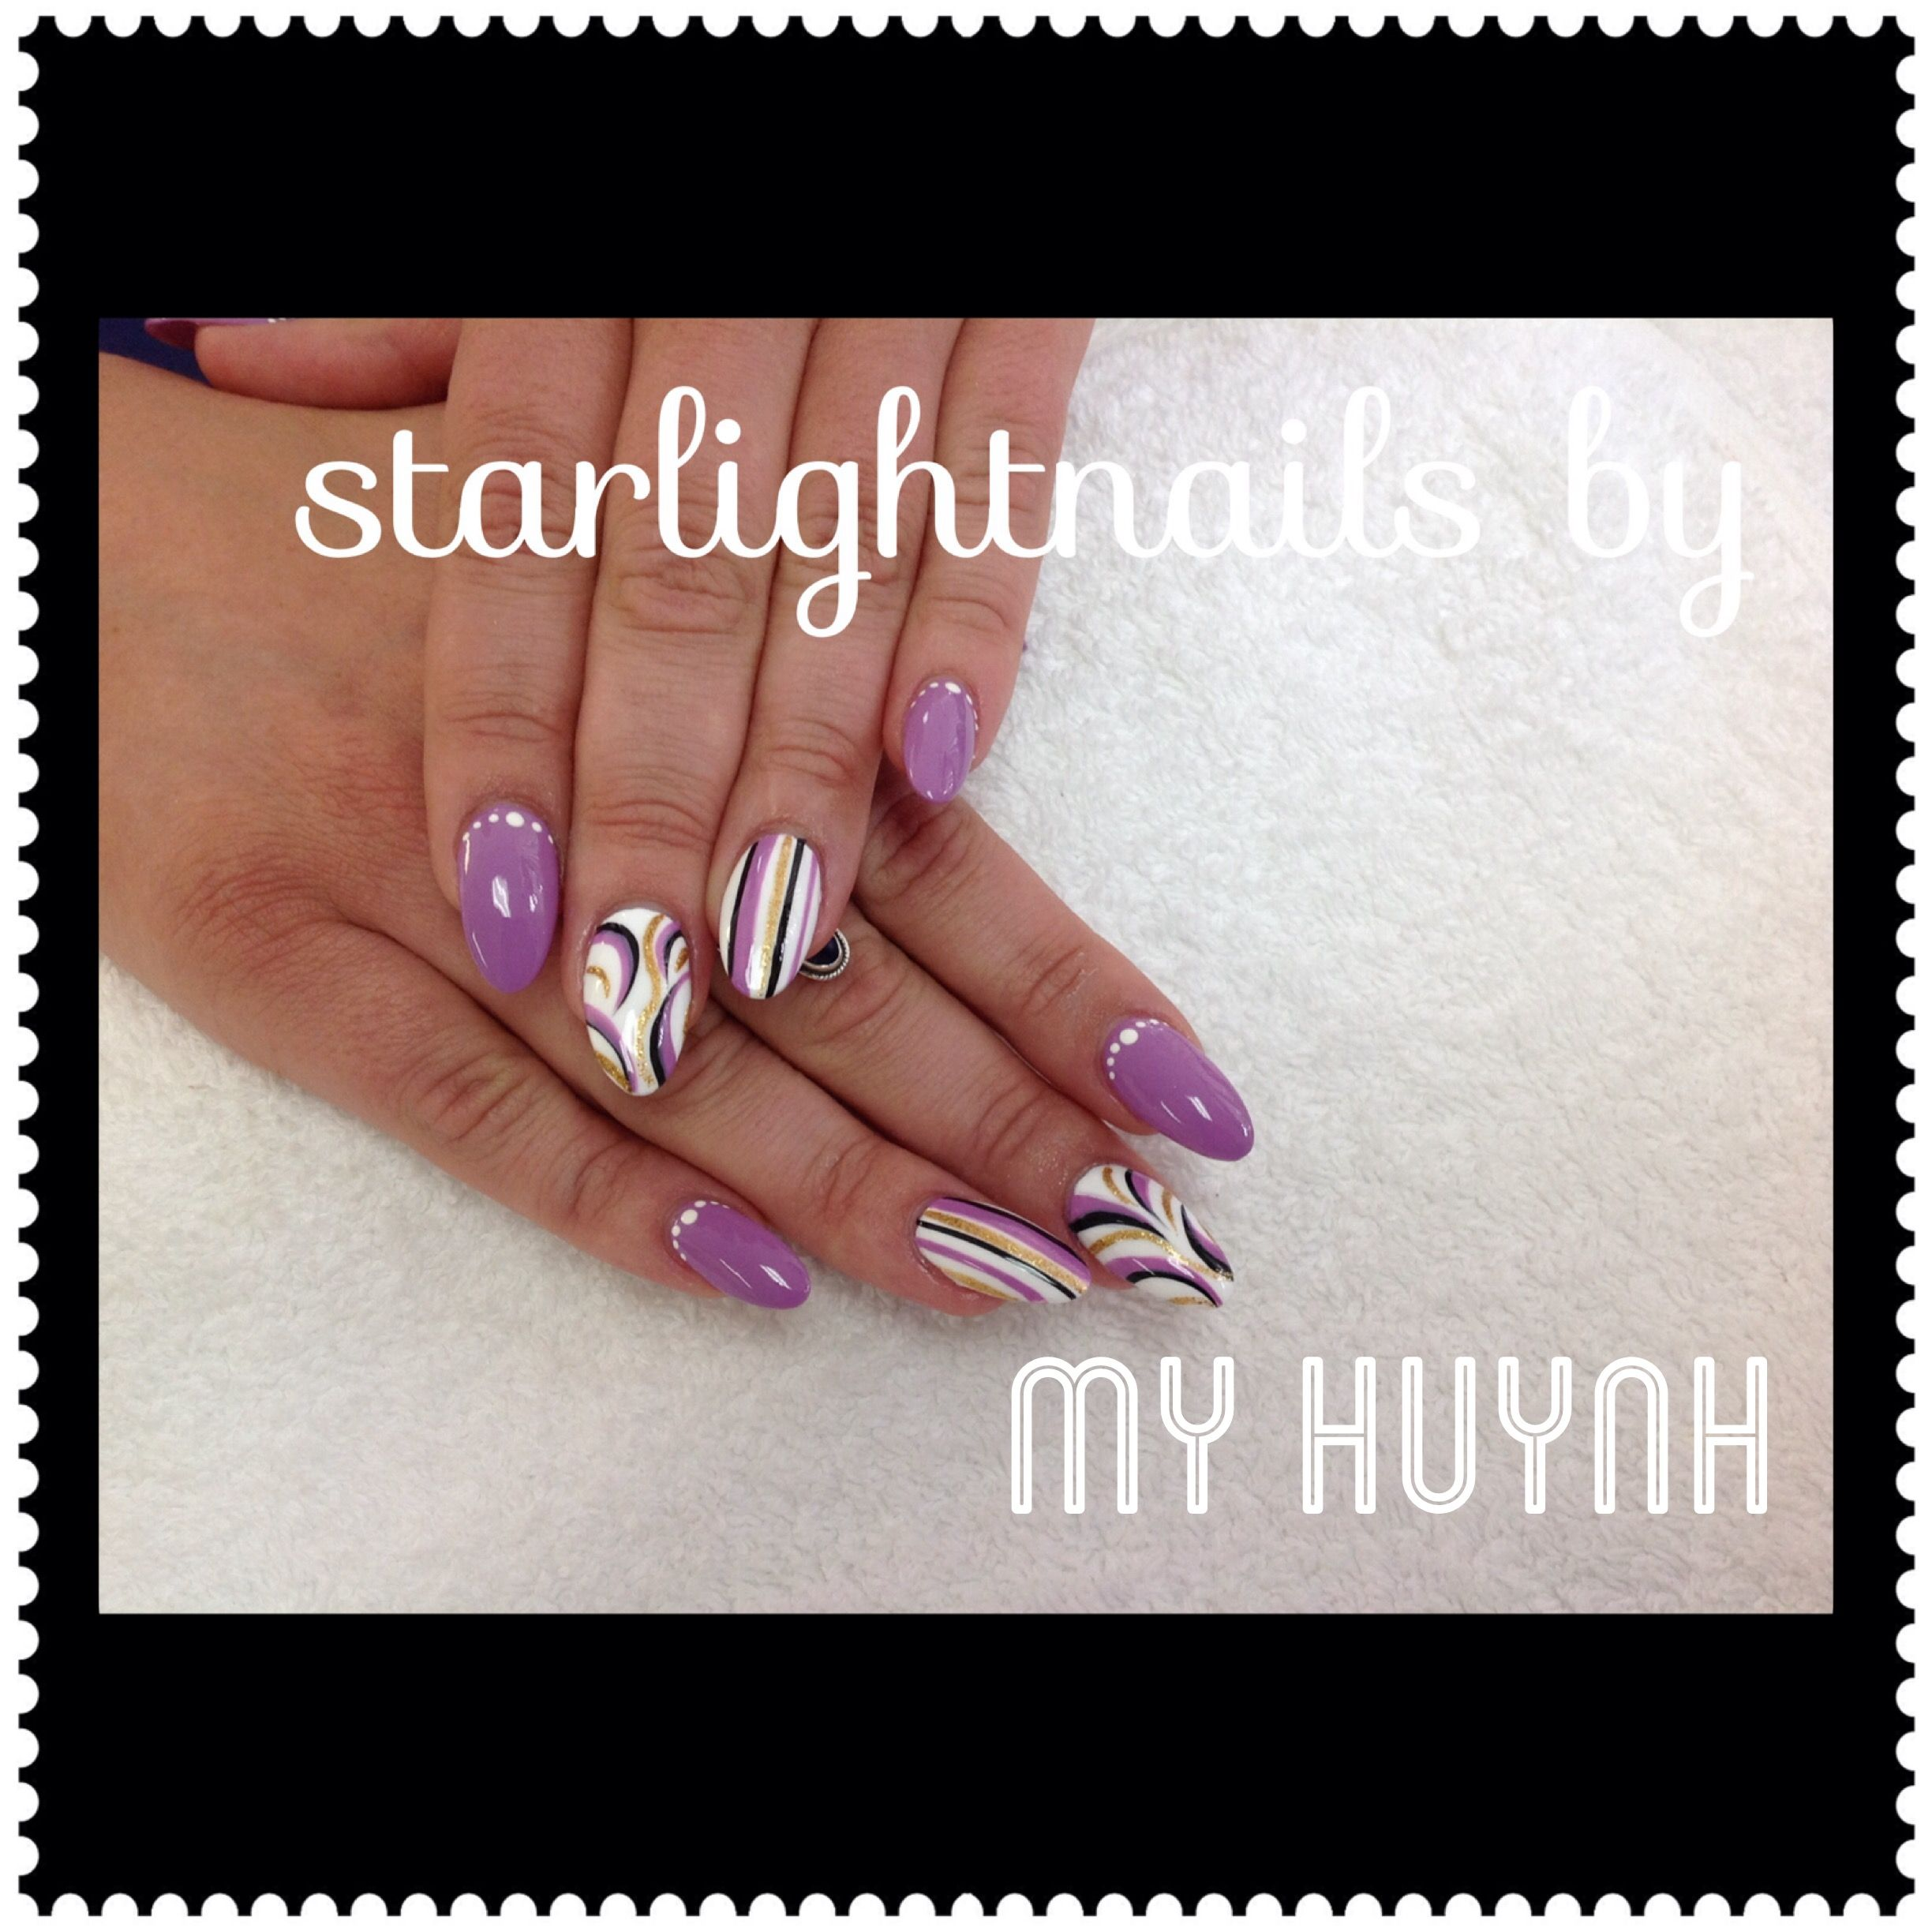 Point nail with purple color free style